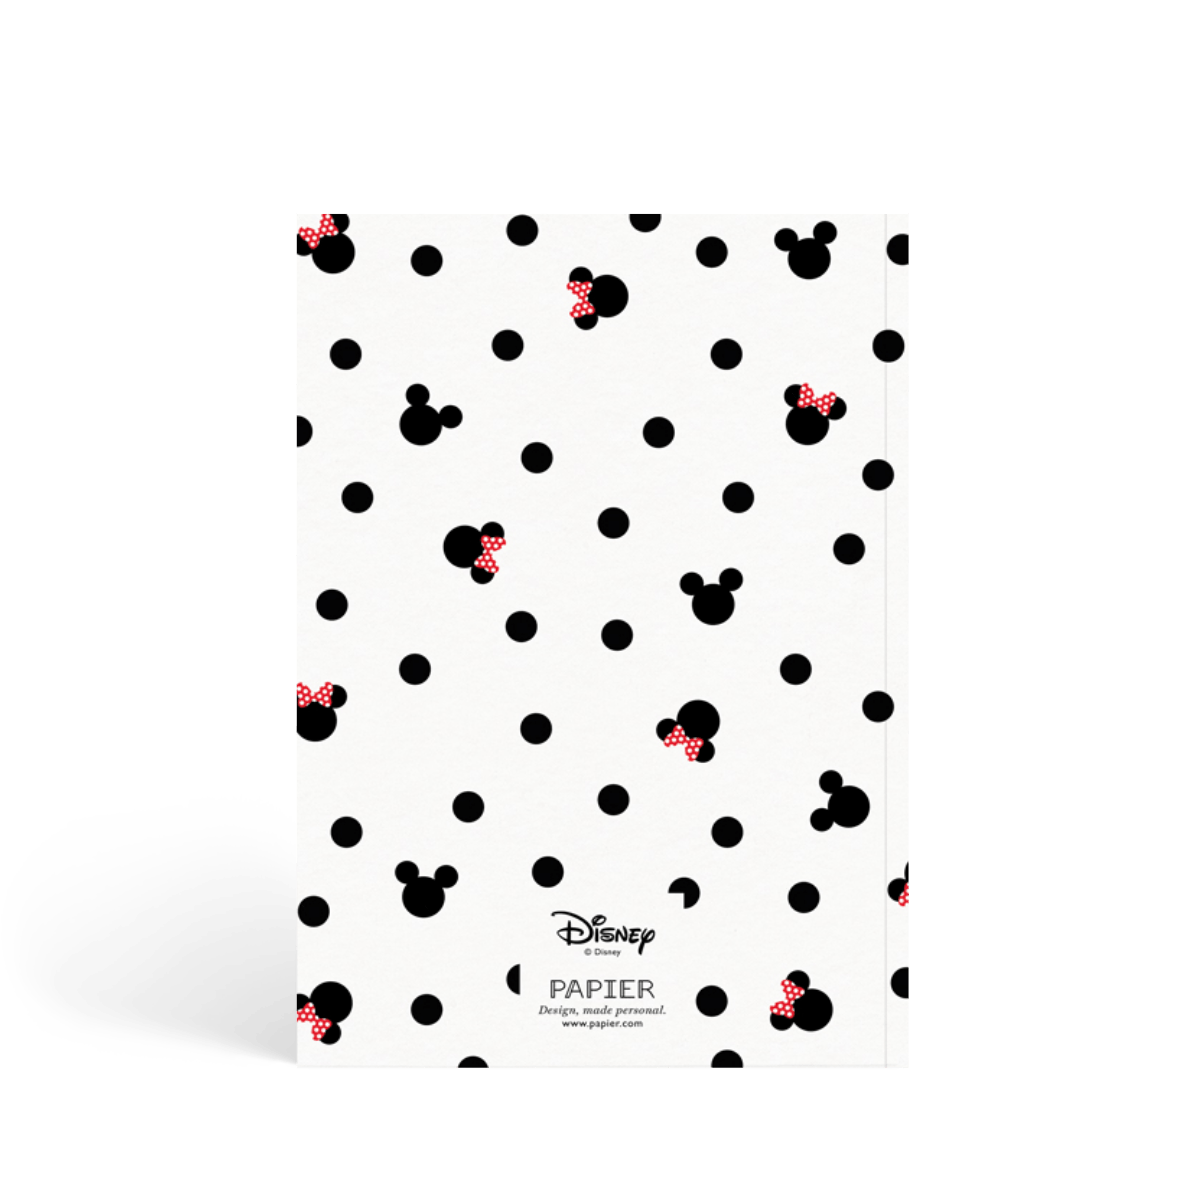 Https%3a%2f%2fwww.papier.com%2fproduct image%2f55819%2f5%2fmickey minnie mouse 13405 rueckseite 1542299837.png?ixlib=rb 1.1